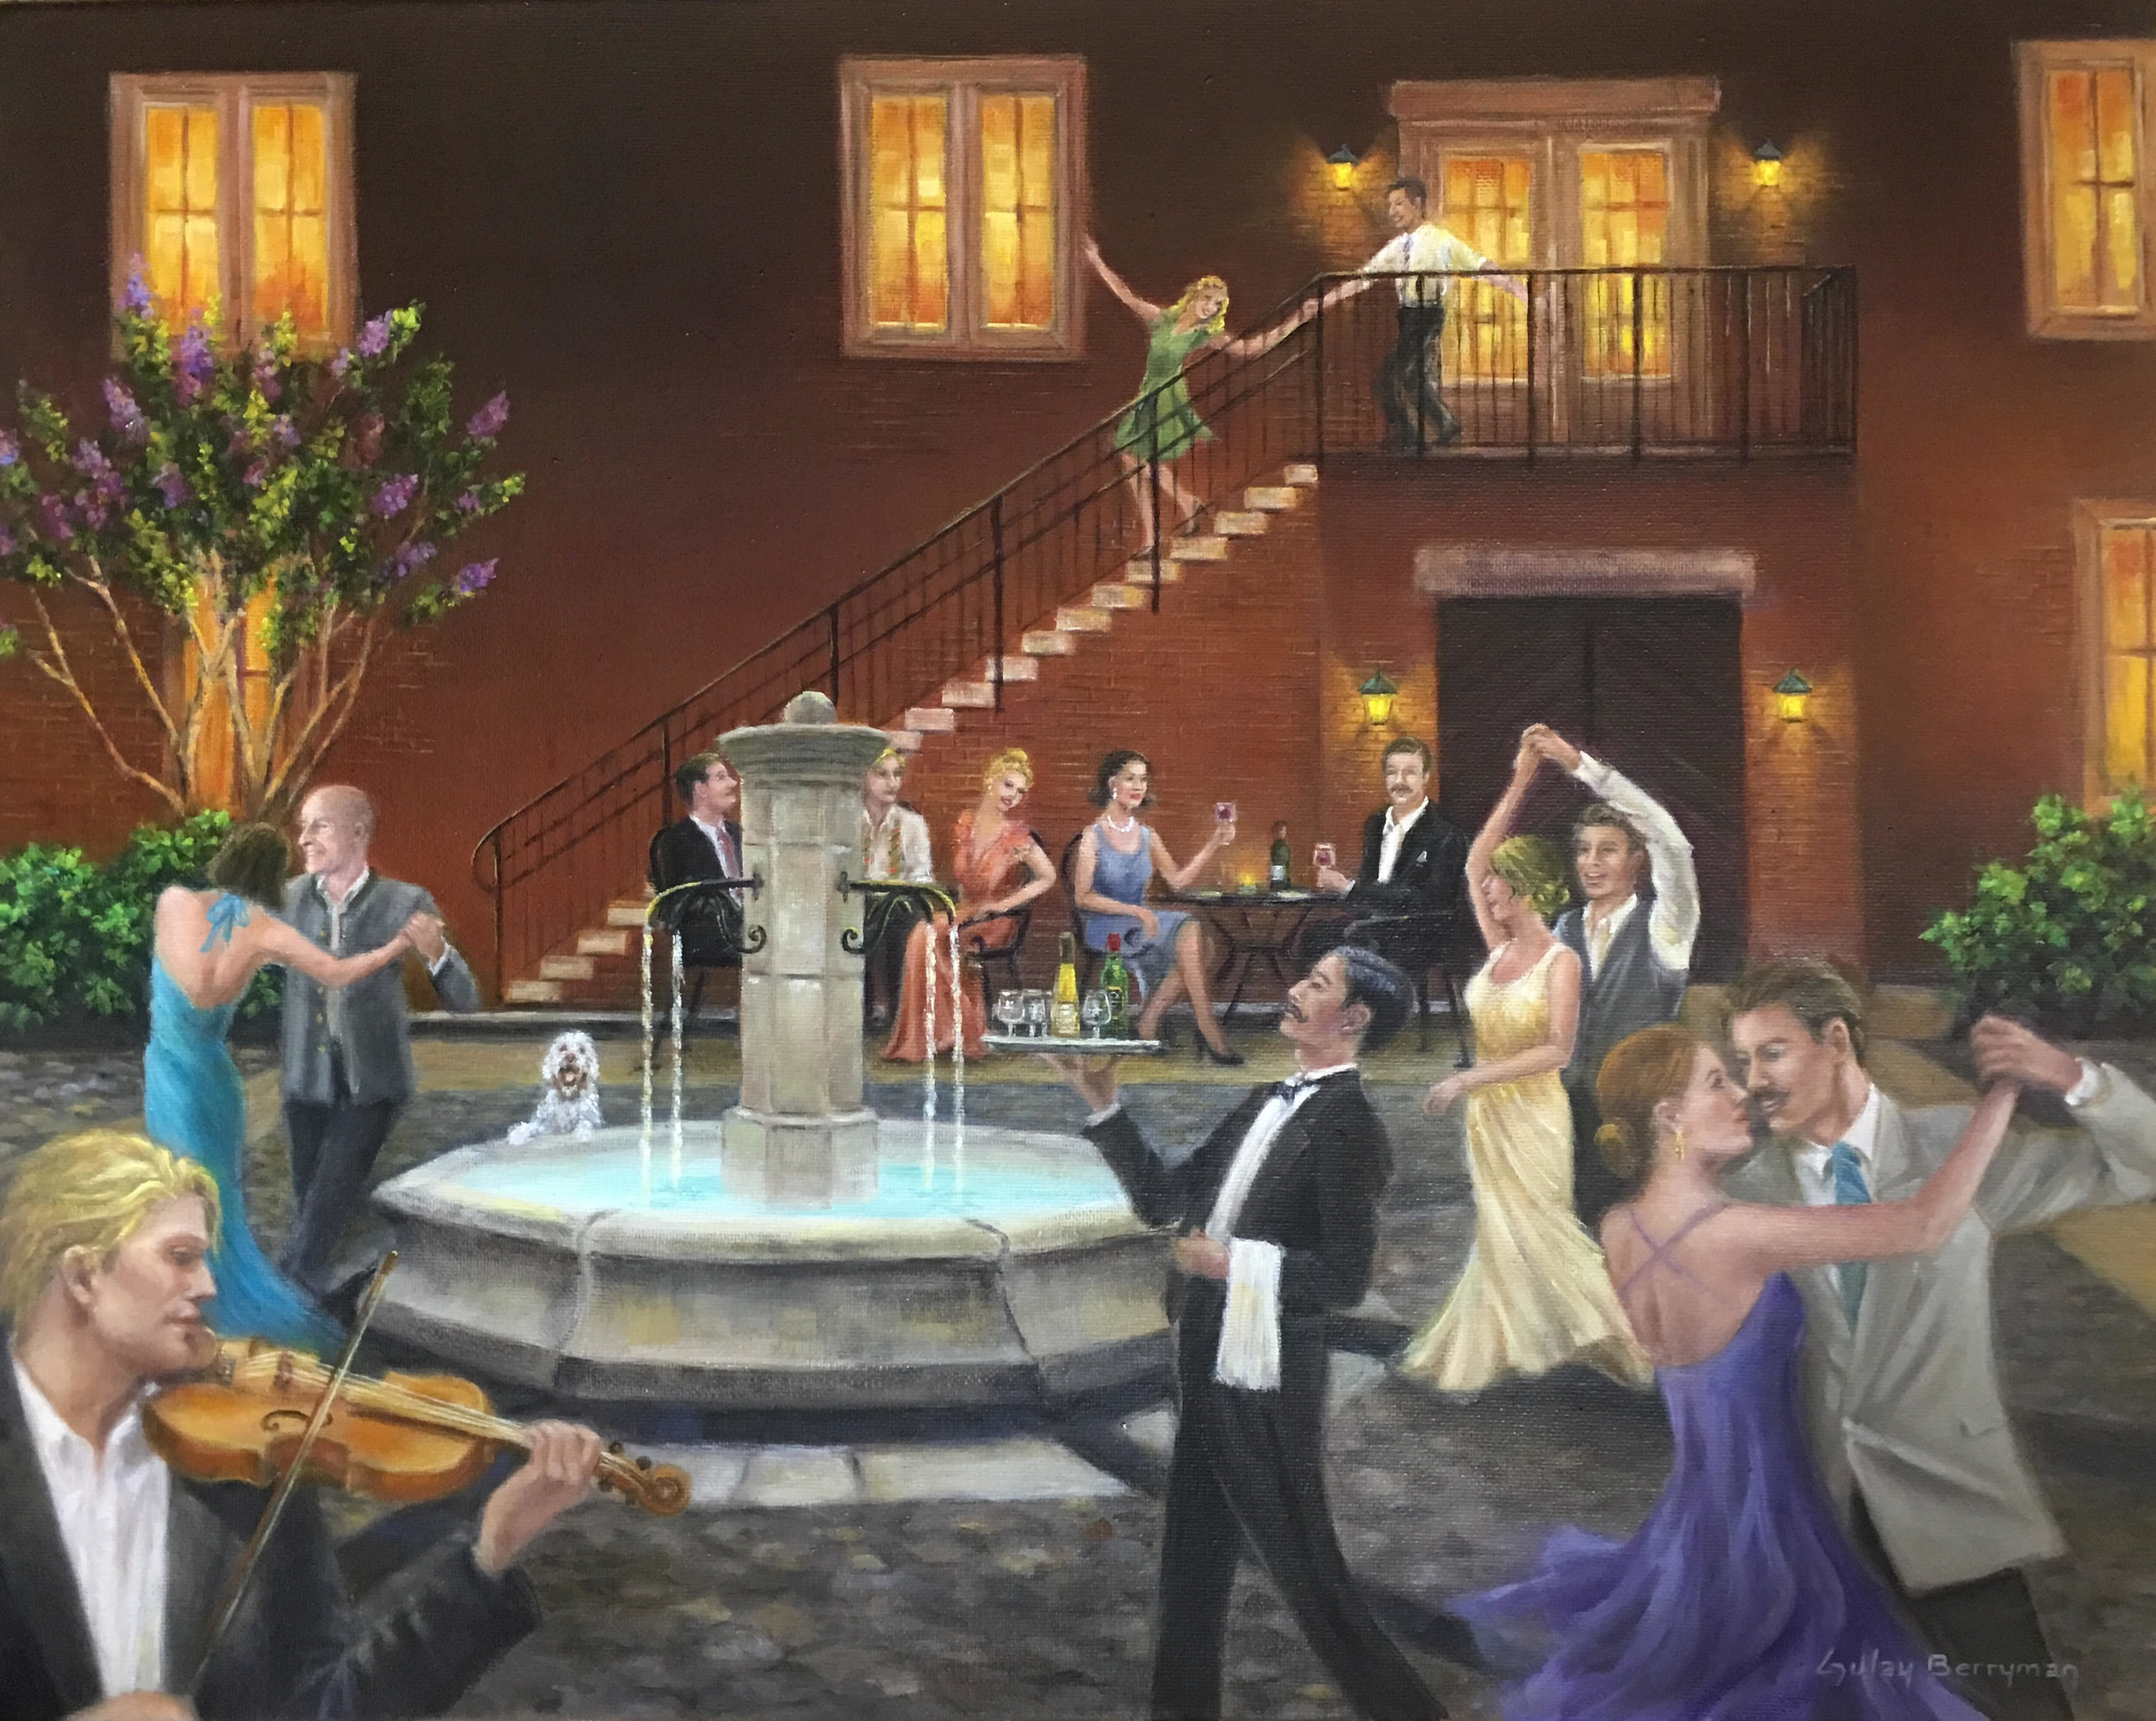 Dancing Under the Stars (Wedmore Place) | 16 x 20 in. oil on canvas by Gulay Berryman